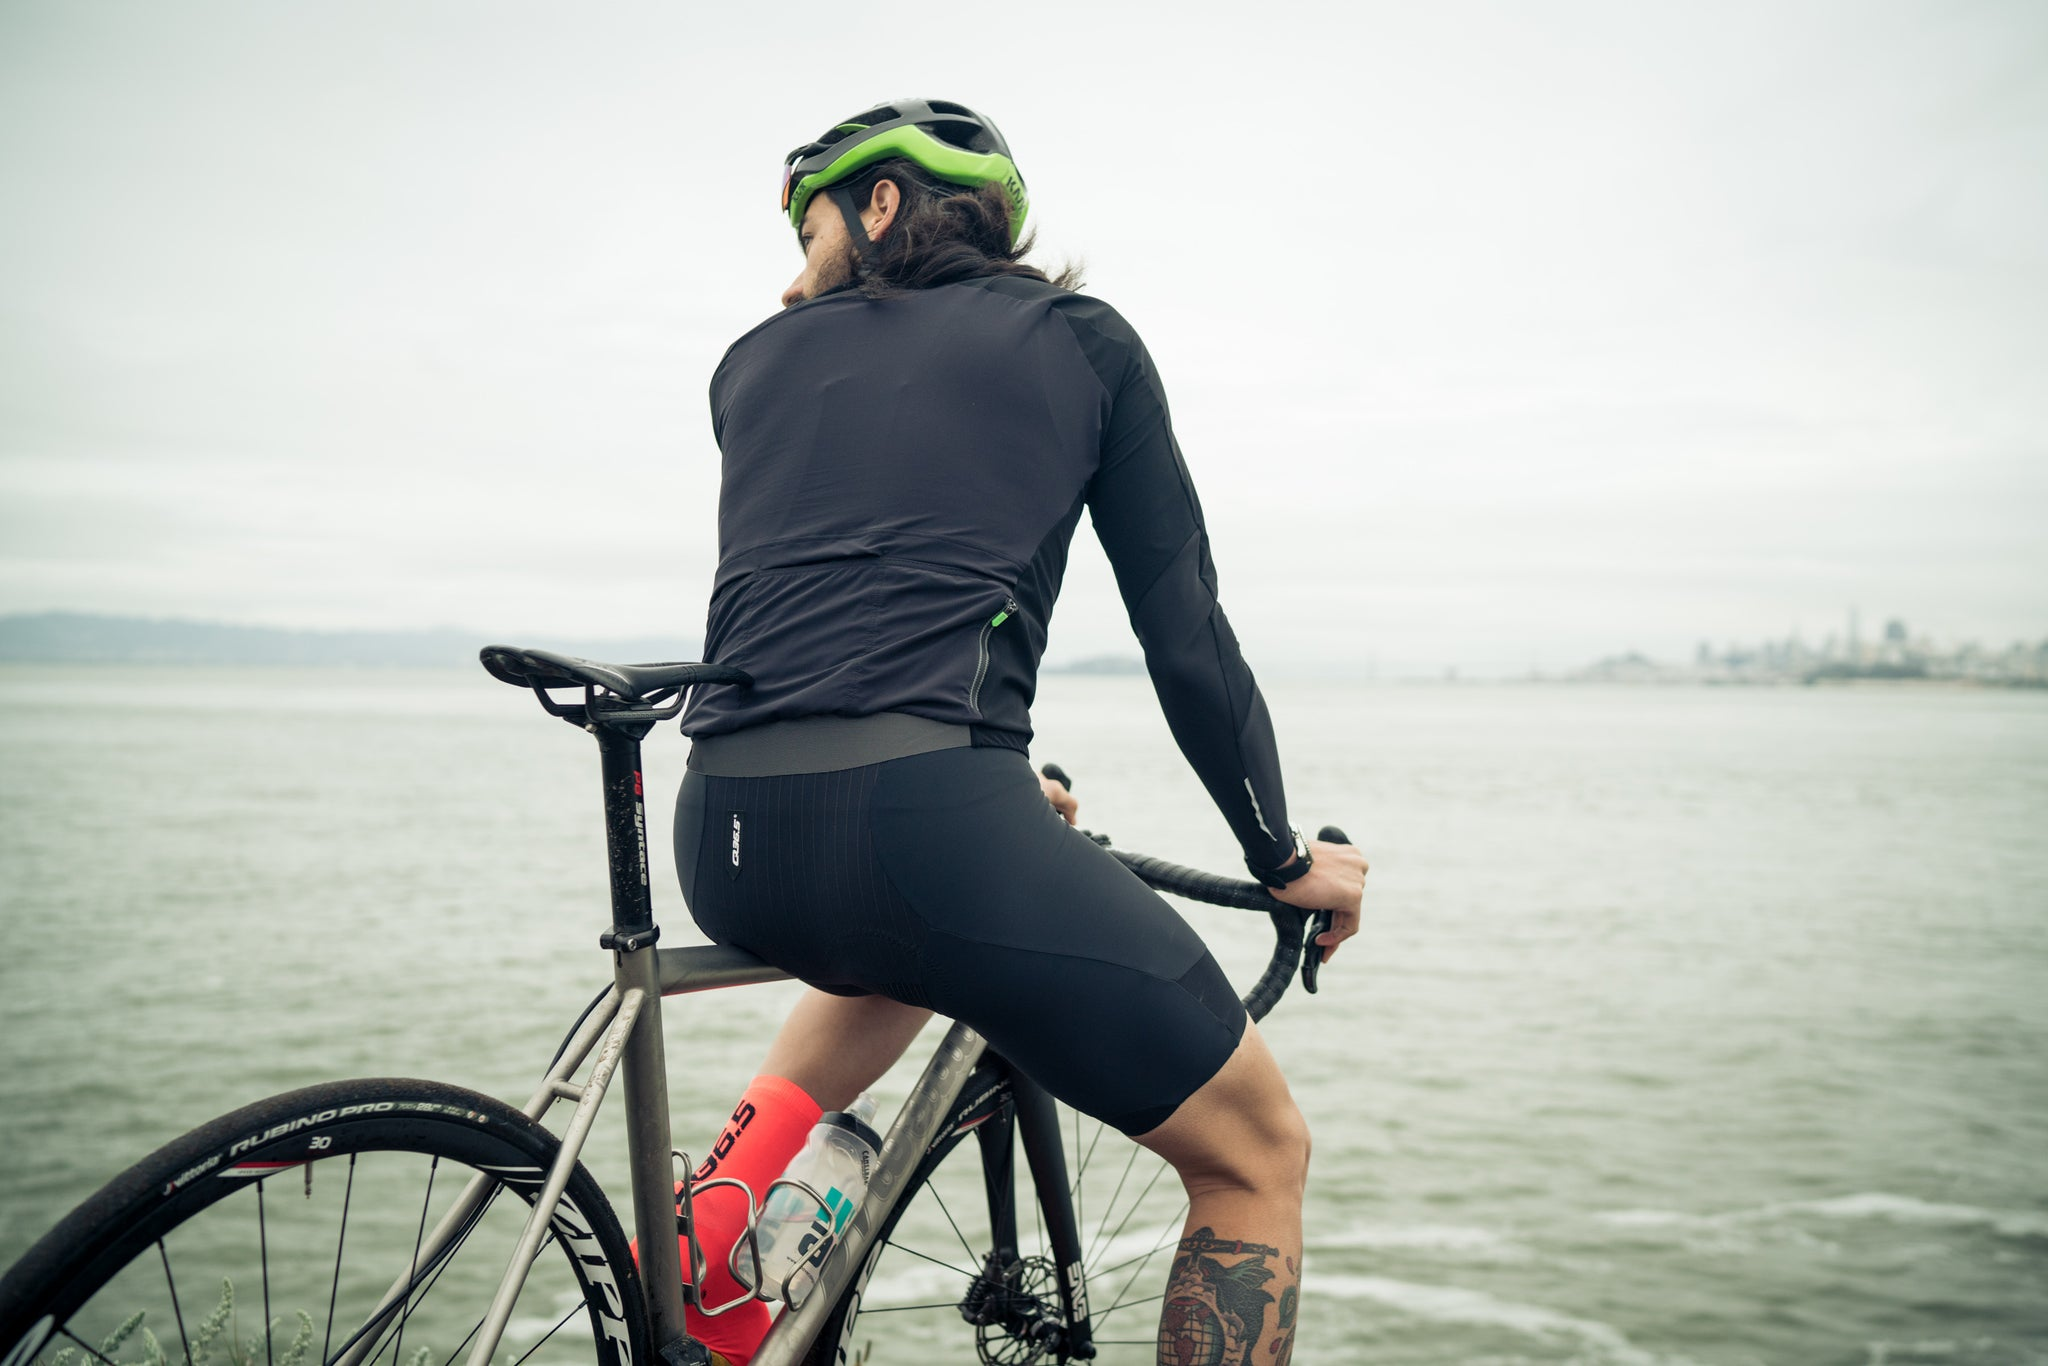 q36.5 gregarious ultra bib short over the bay